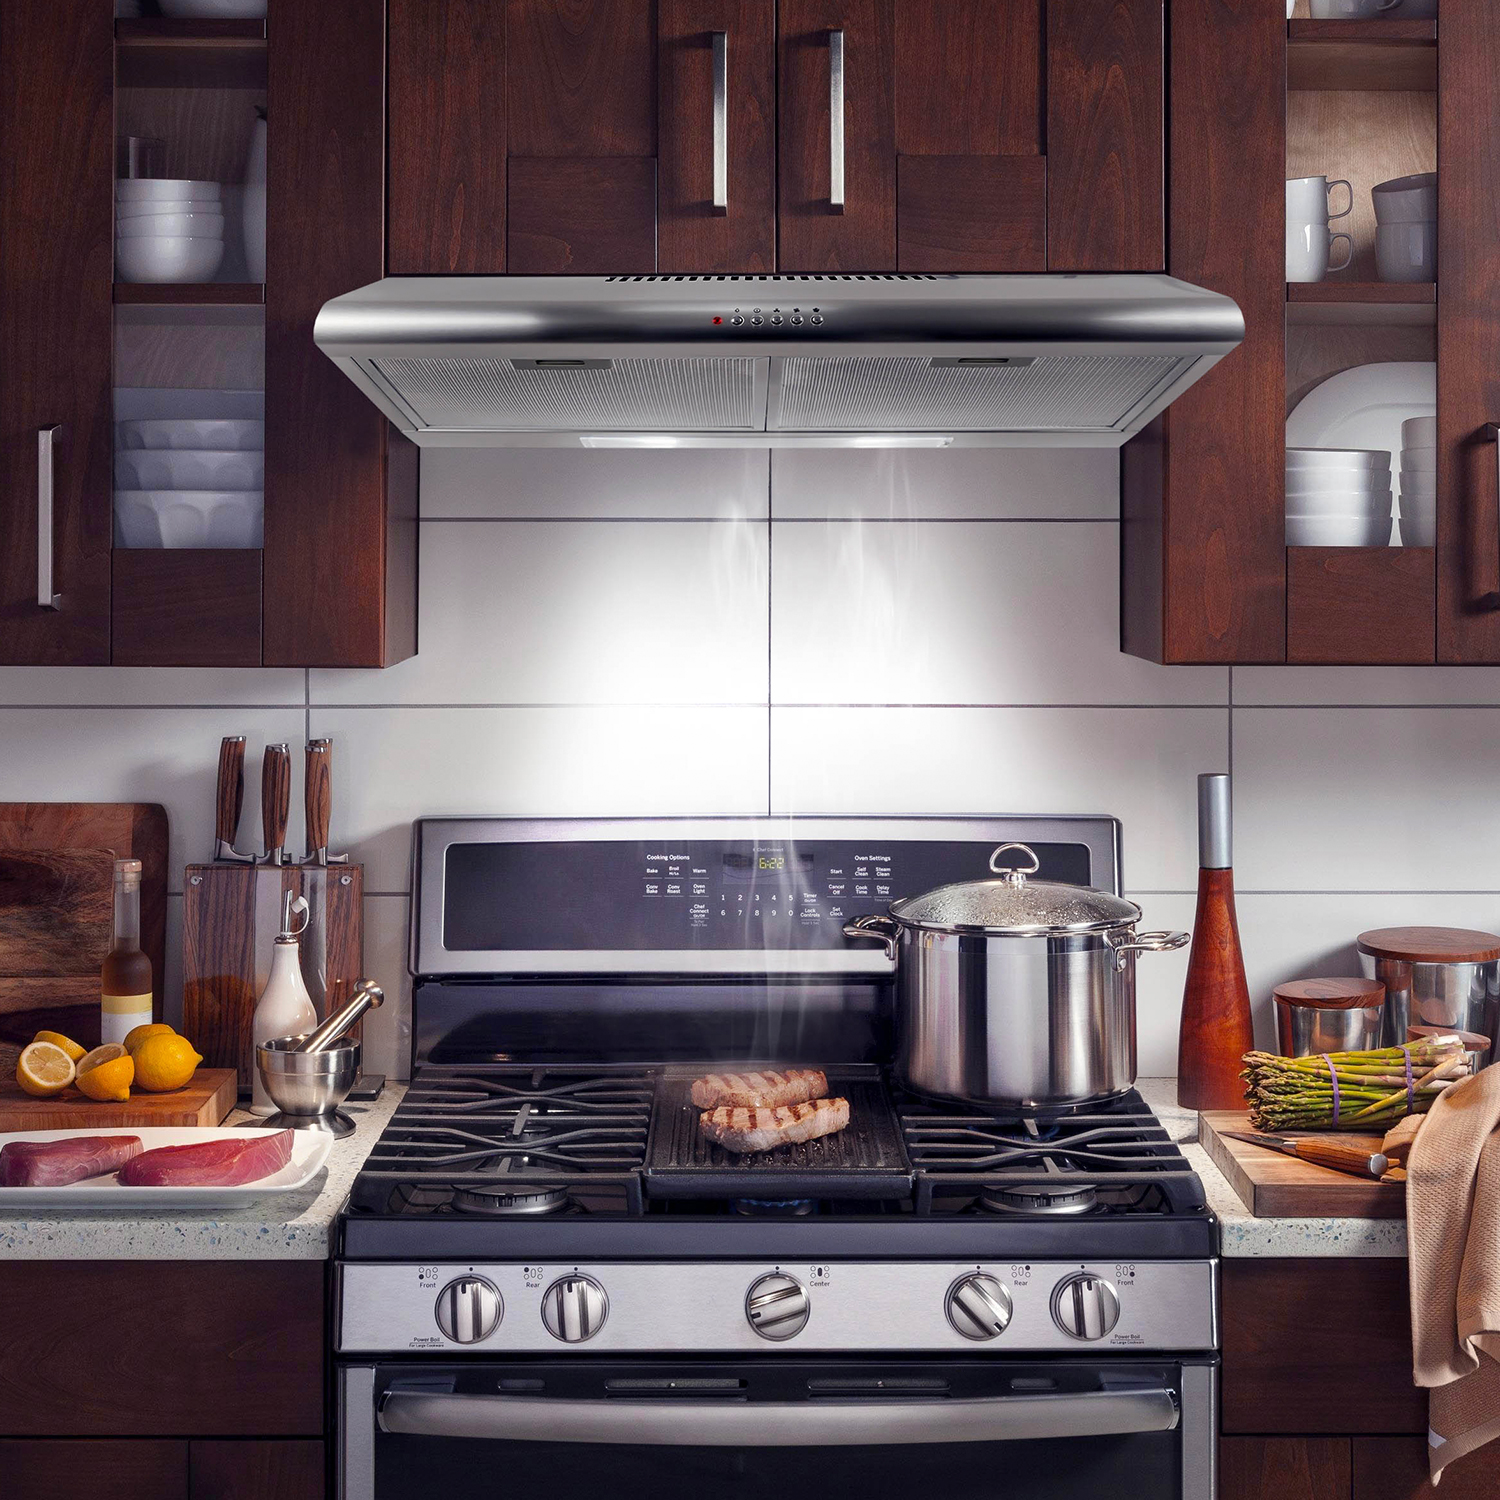 Under Cabinet Kitchen Tv Best Buy: 30 In. Under Cabinet Range Hood Cosmo Appliances (COS-5MU30